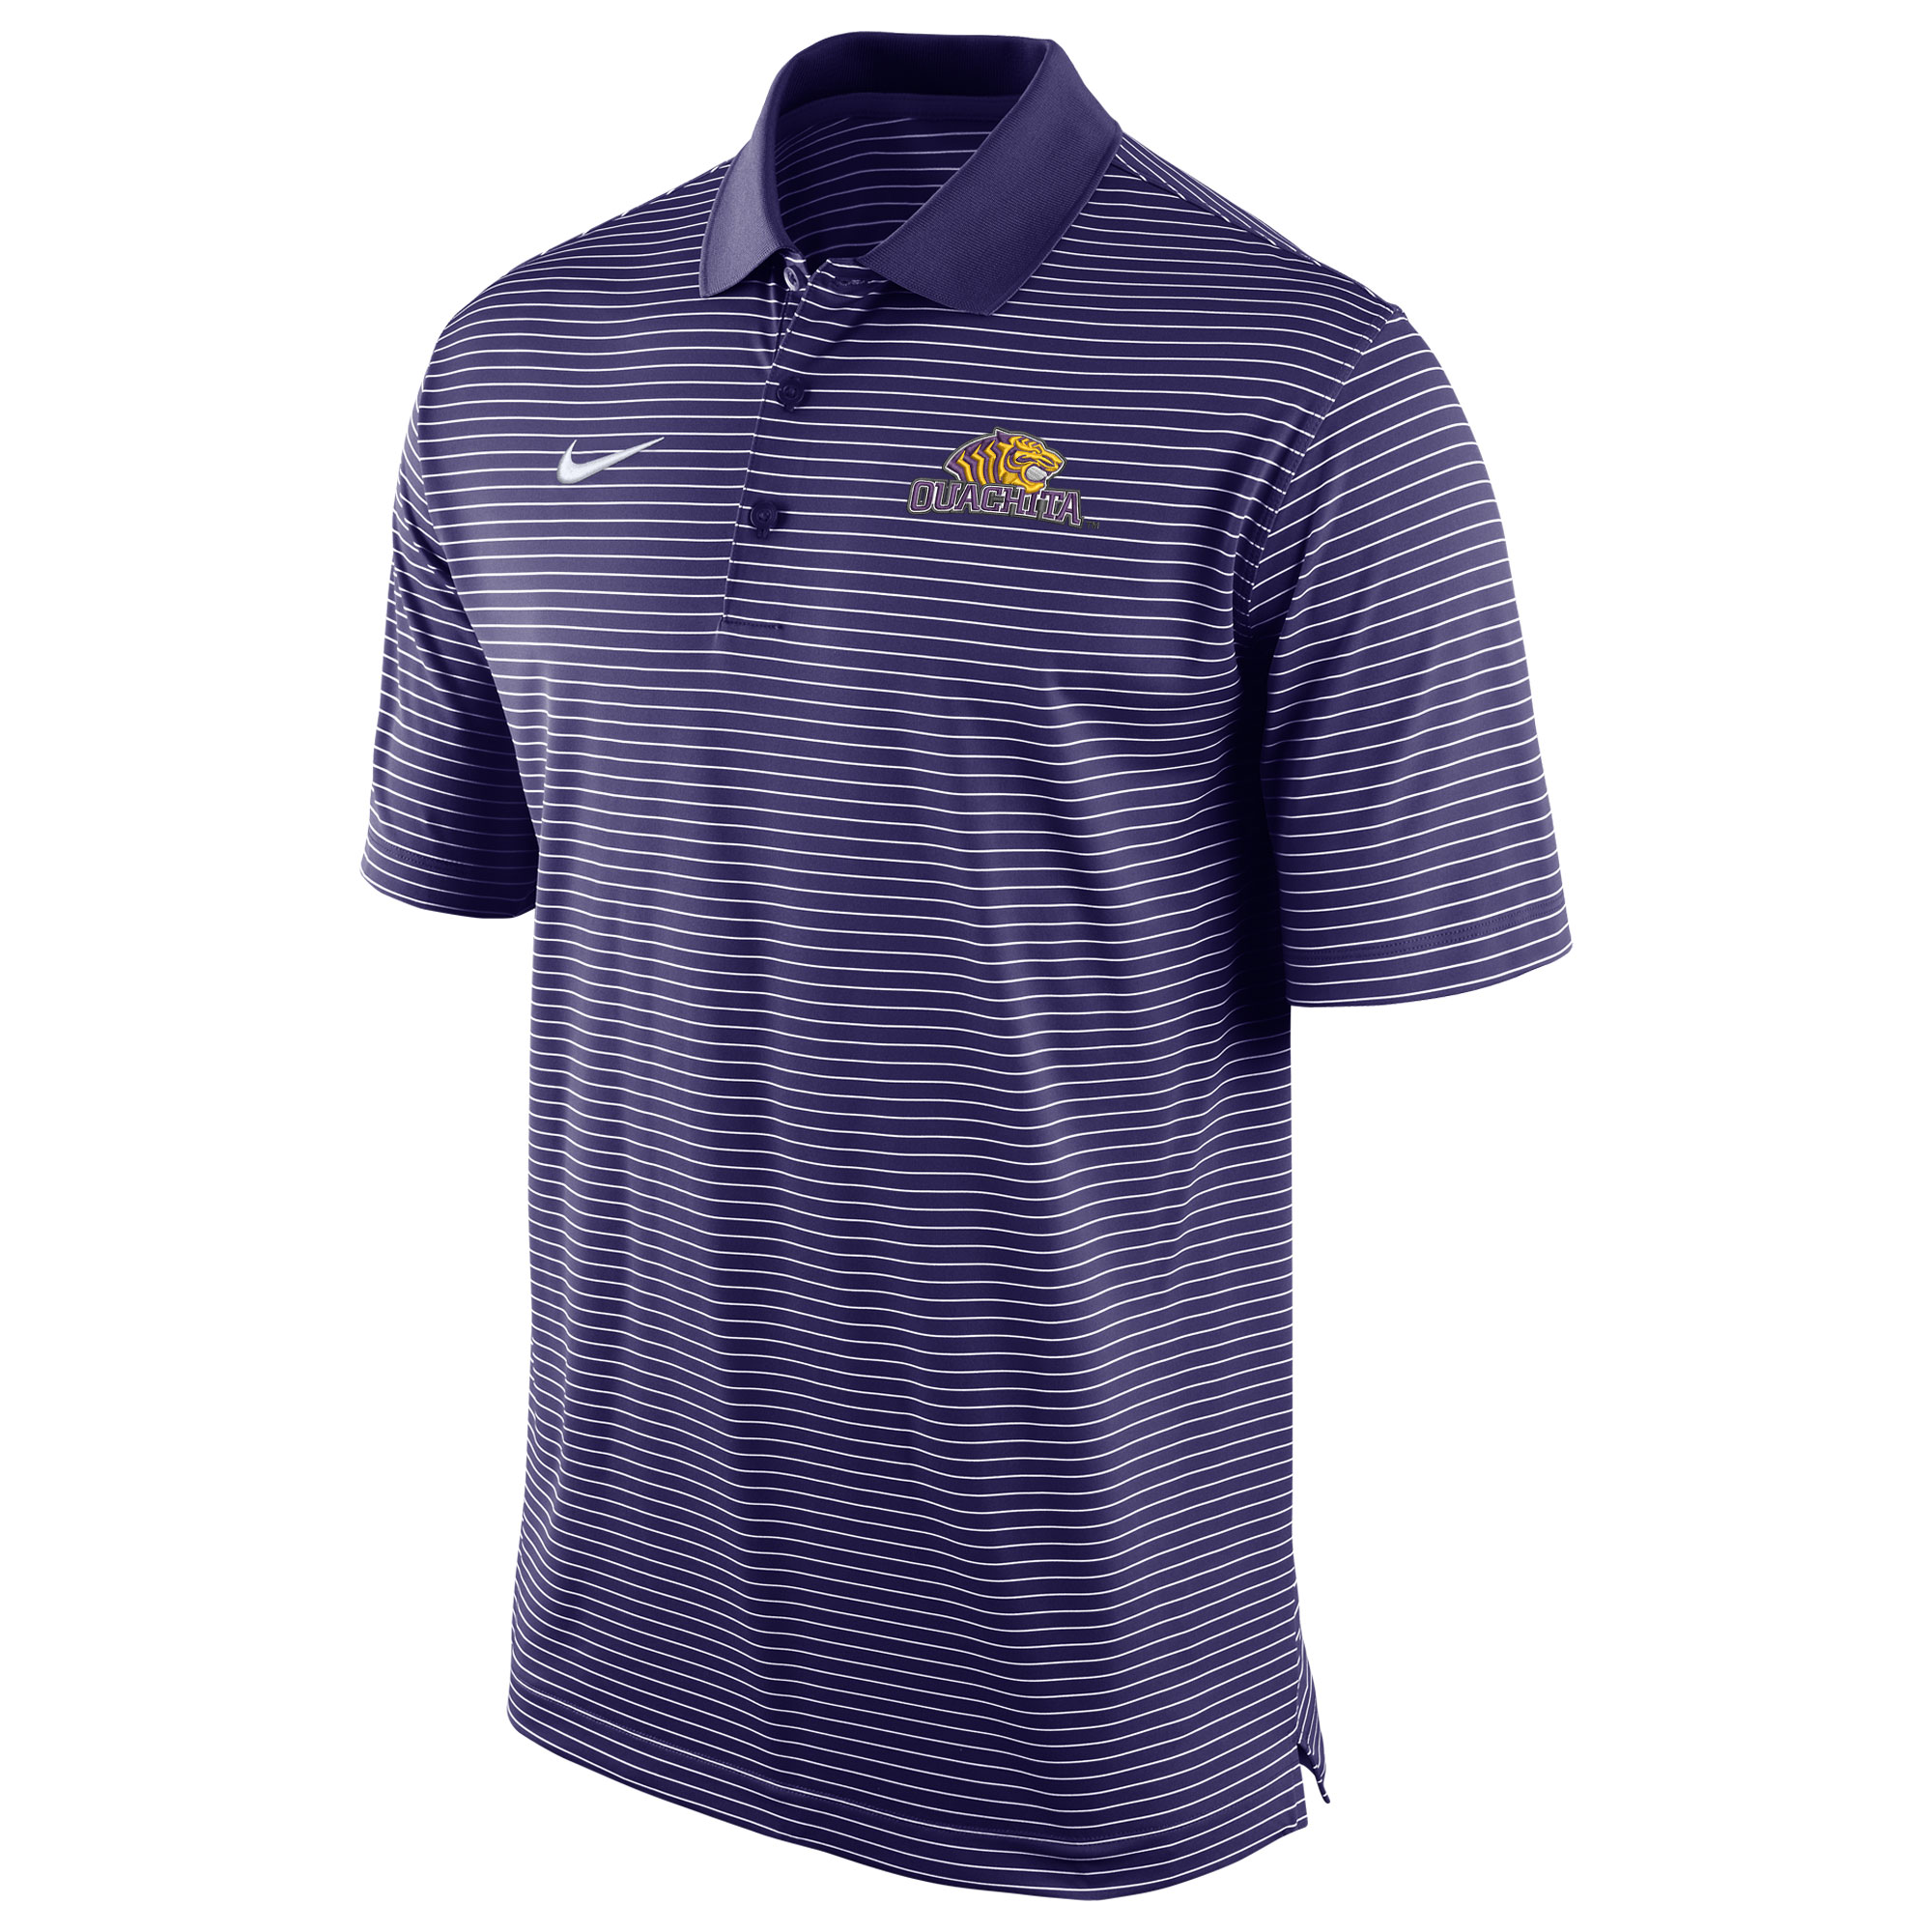 OUACHITA STADIUM STRIPE POLO